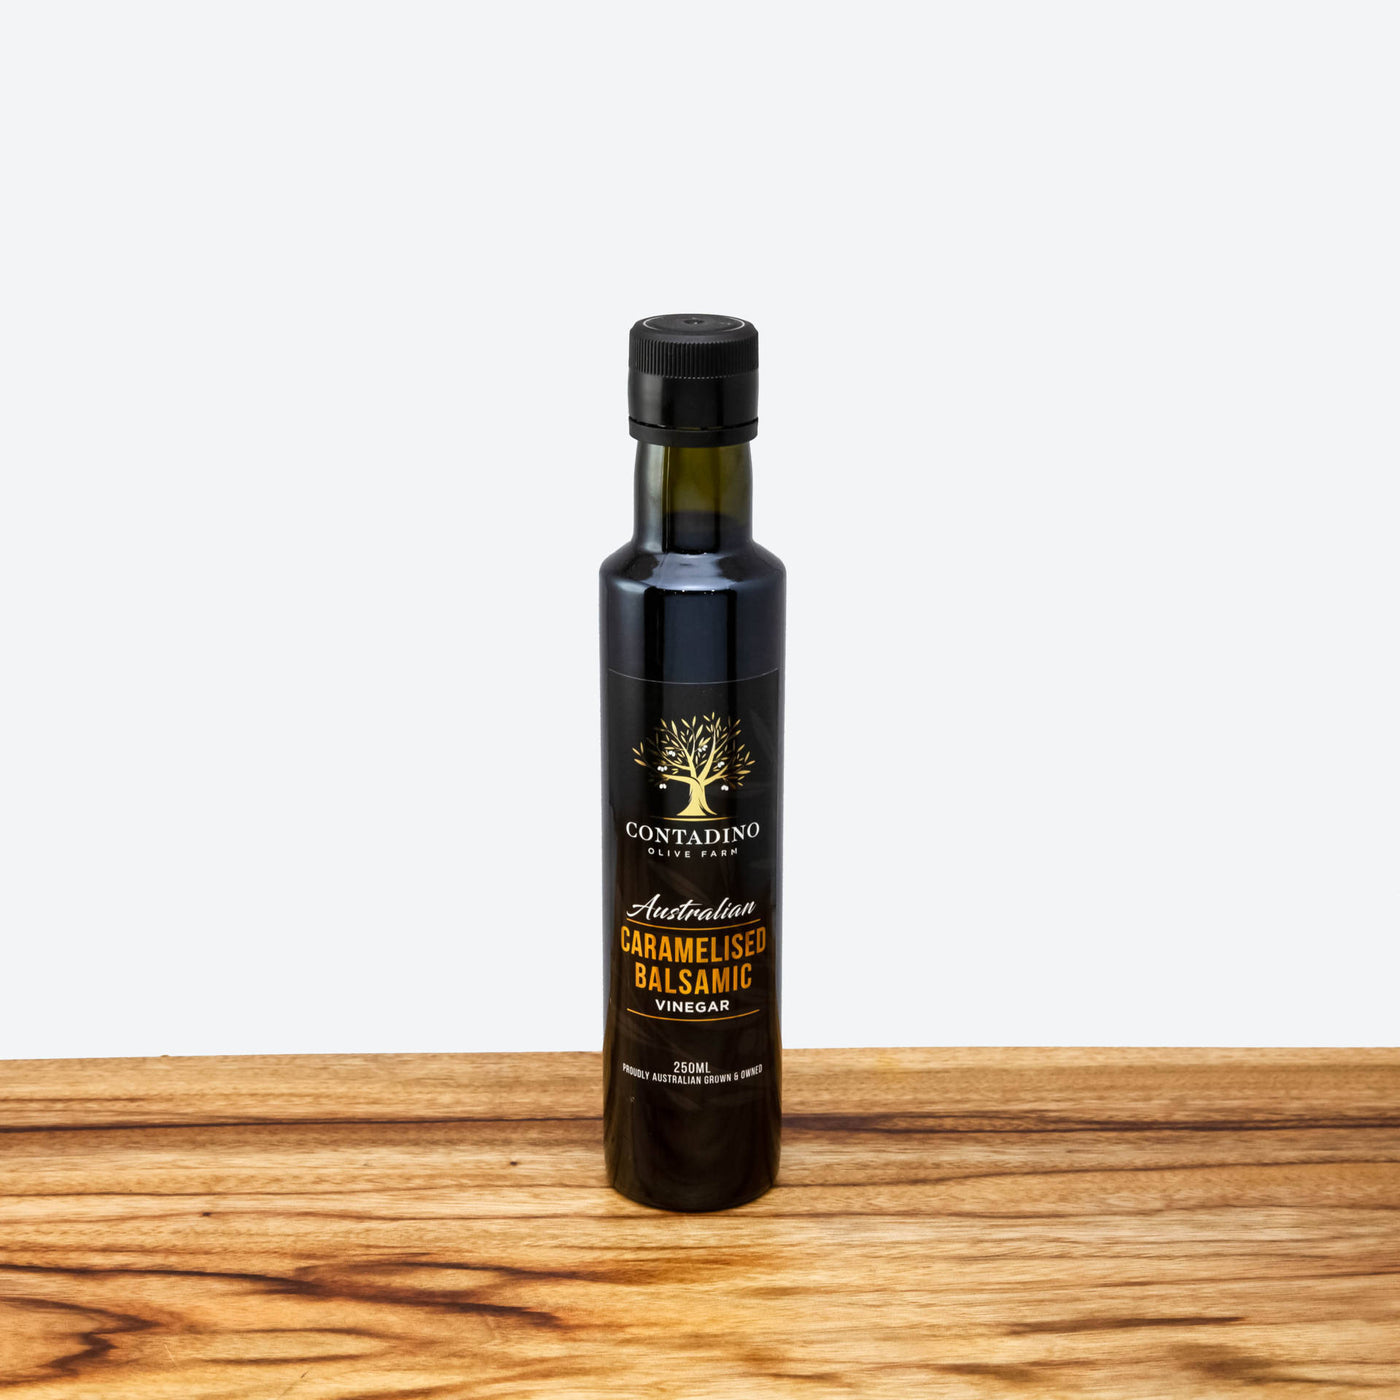 Australian Vinegar - Caramelised Balsamic - 250ml